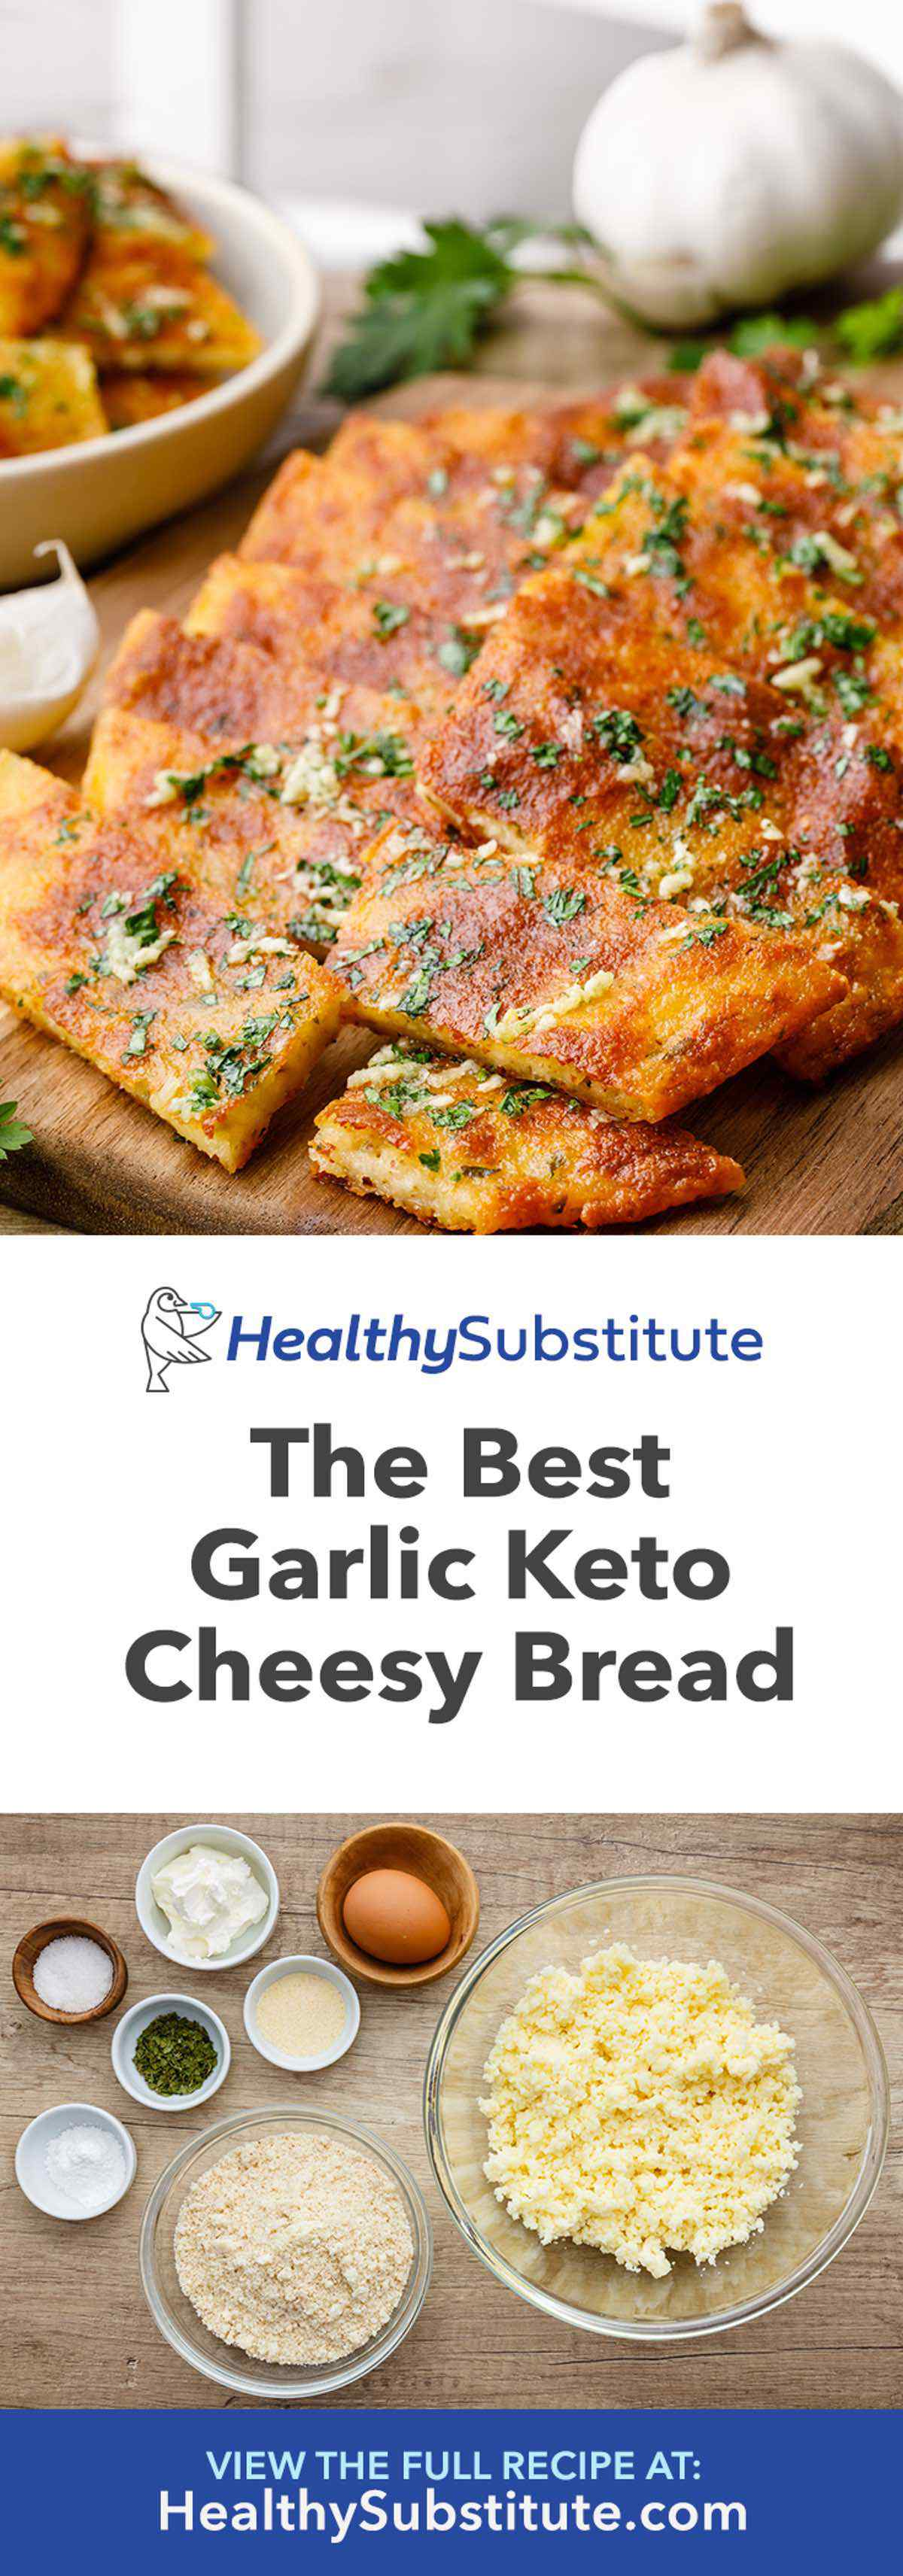 Low Carb Garlic Keto Cheesy Bread